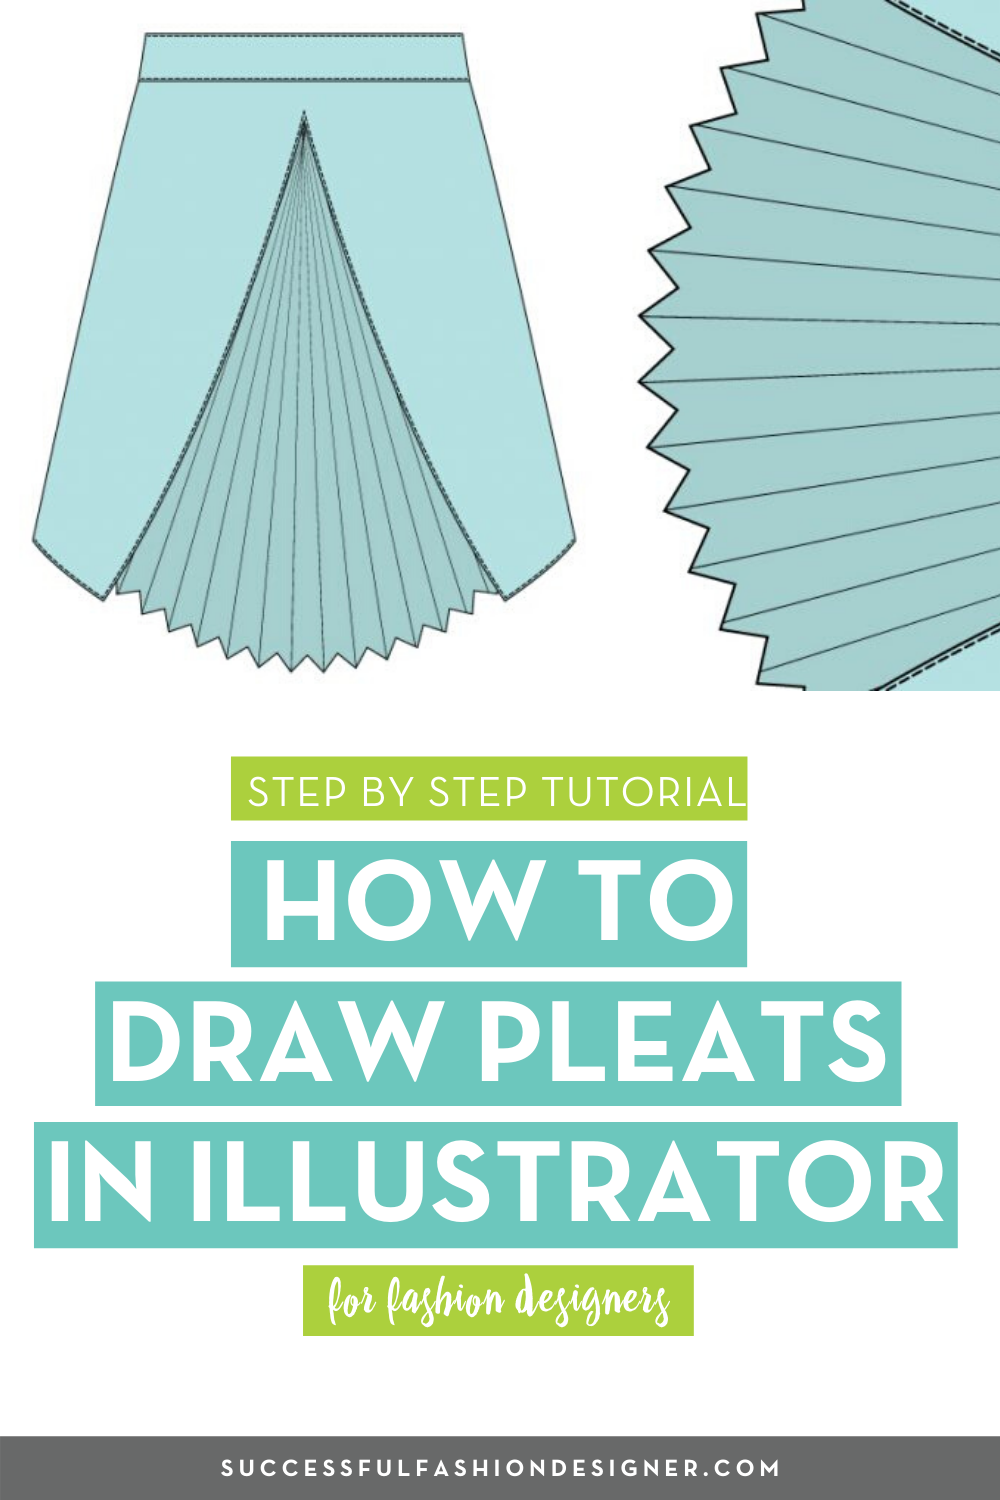 How To Draw Pleats In Illustrator Courses Free Tutorials On Adobe Illustrator Tech Packs Freelancing For Fashion Designers Fashion Design Portfolio Fashion Design Fashion Illustration Portfolio